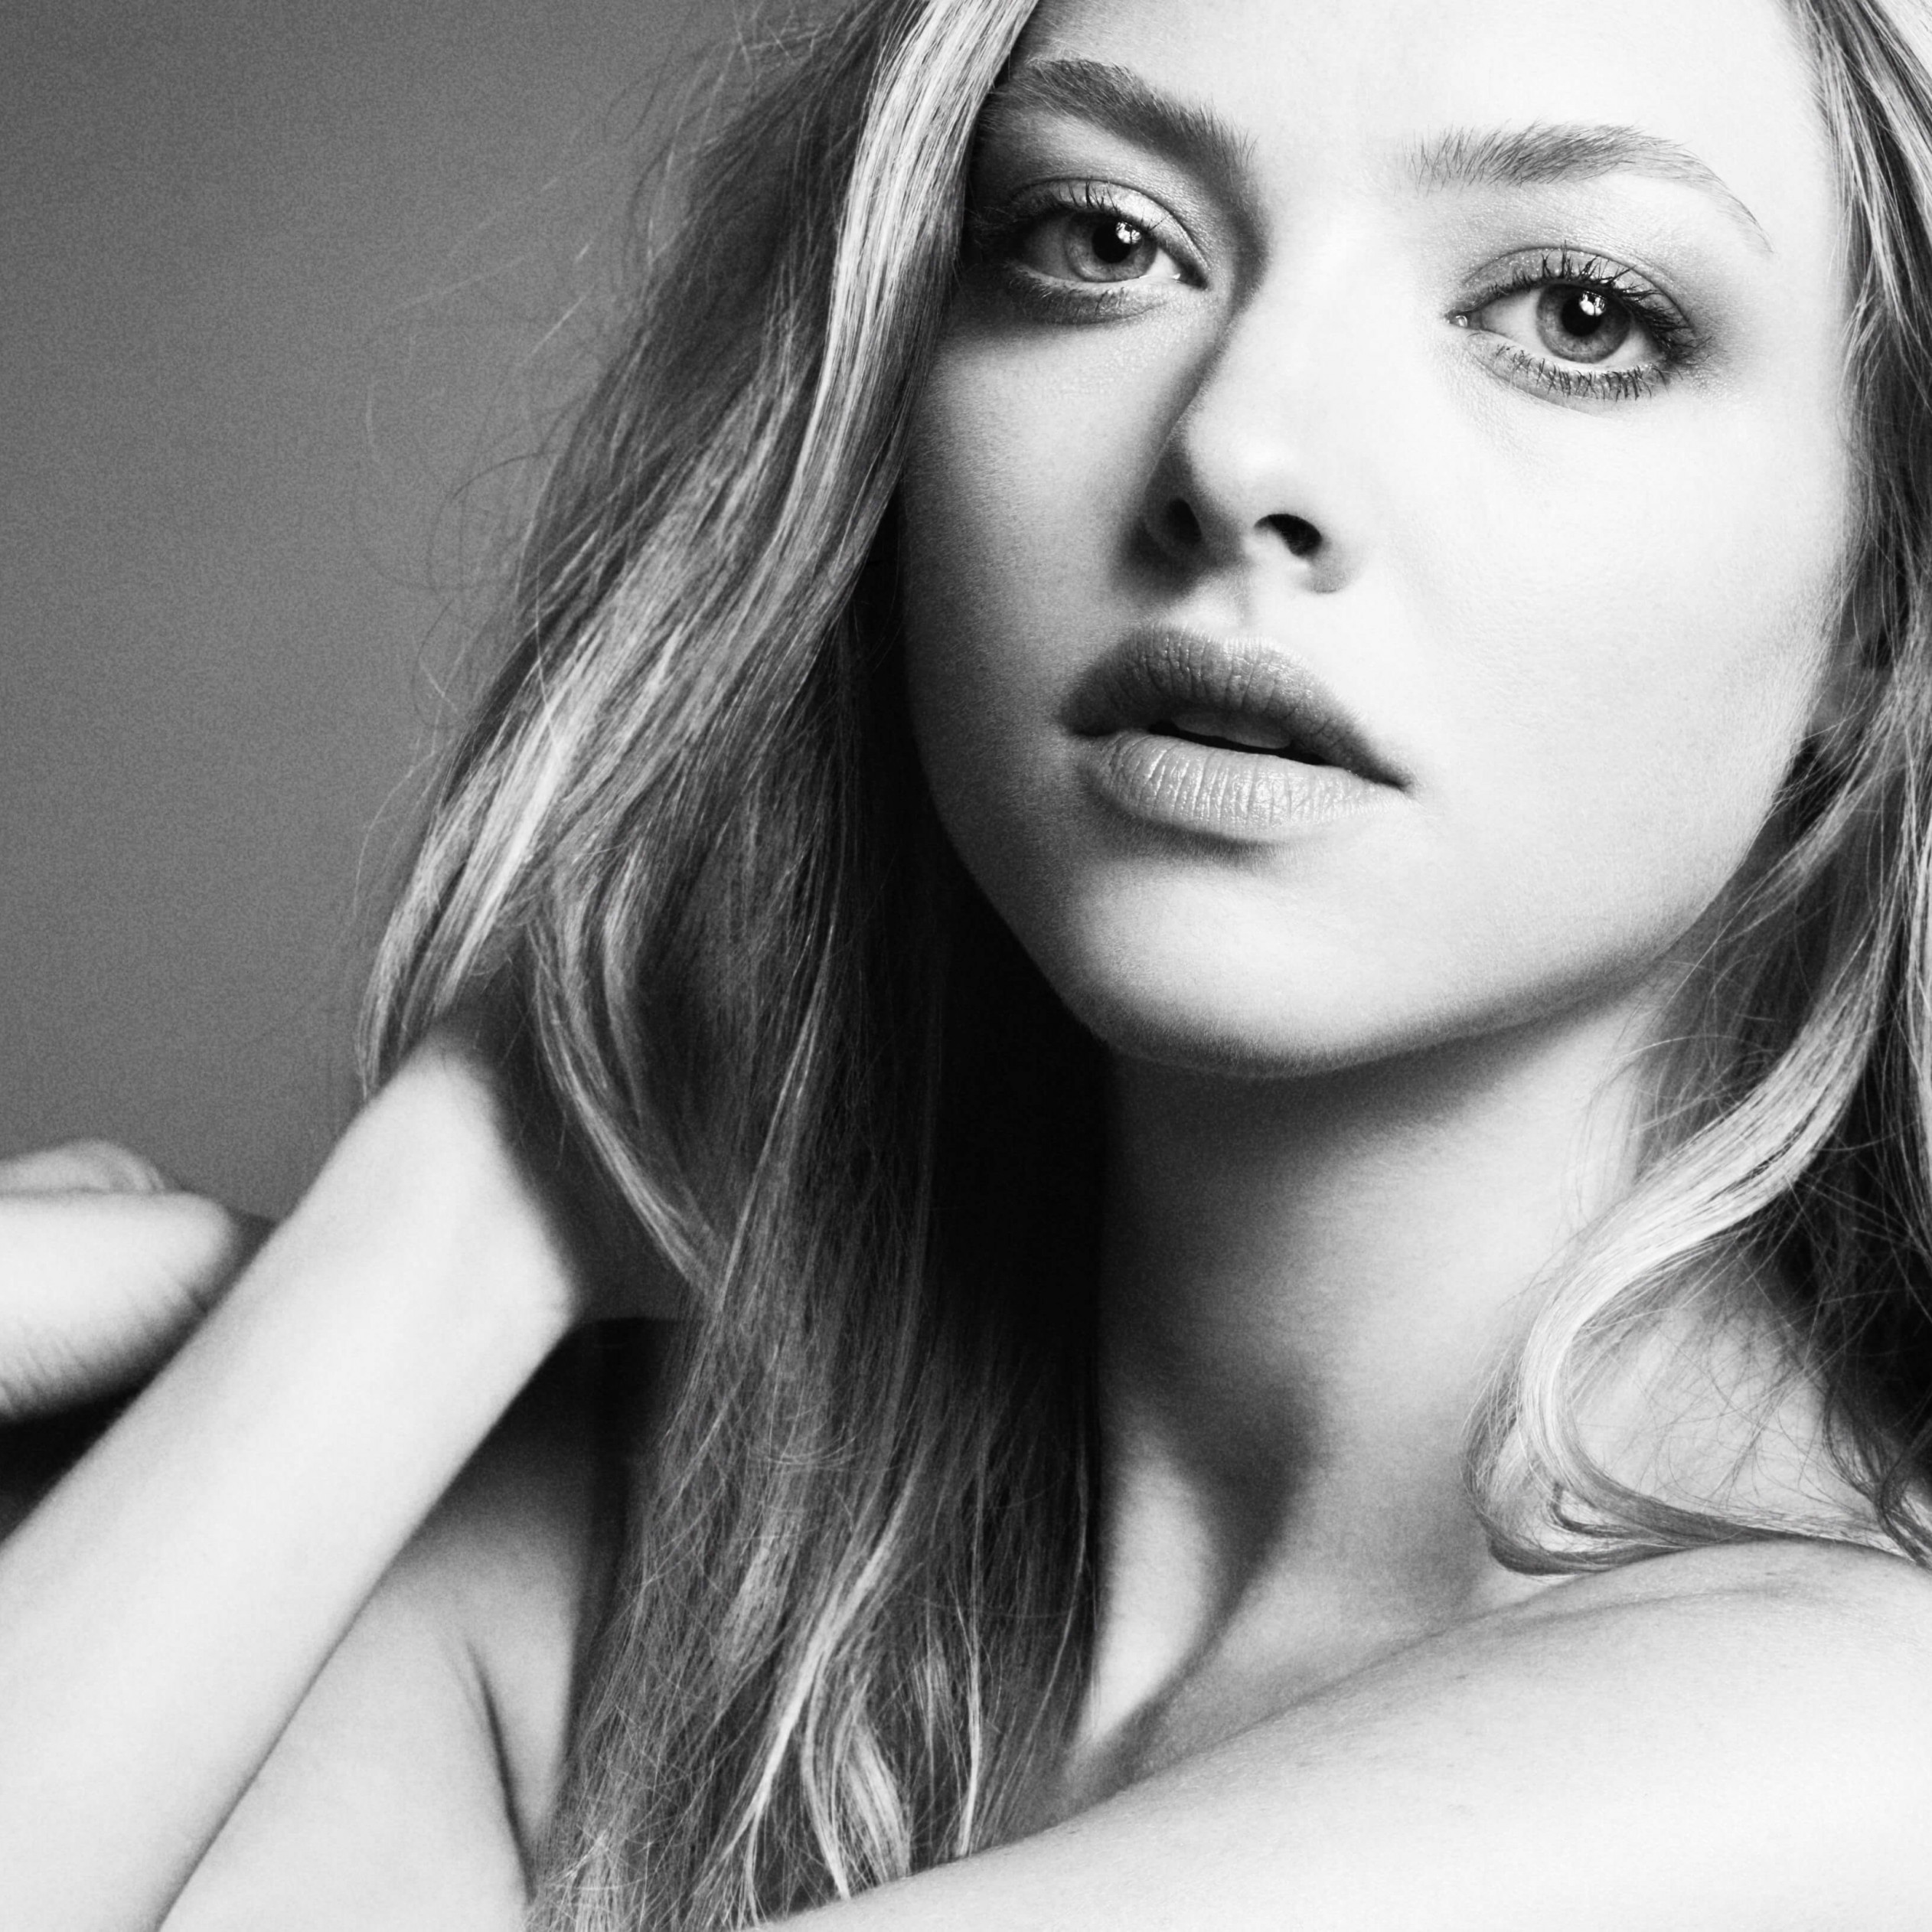 Amanda Seyfried Black & White Portrait Wallpaper for Apple iPad 3